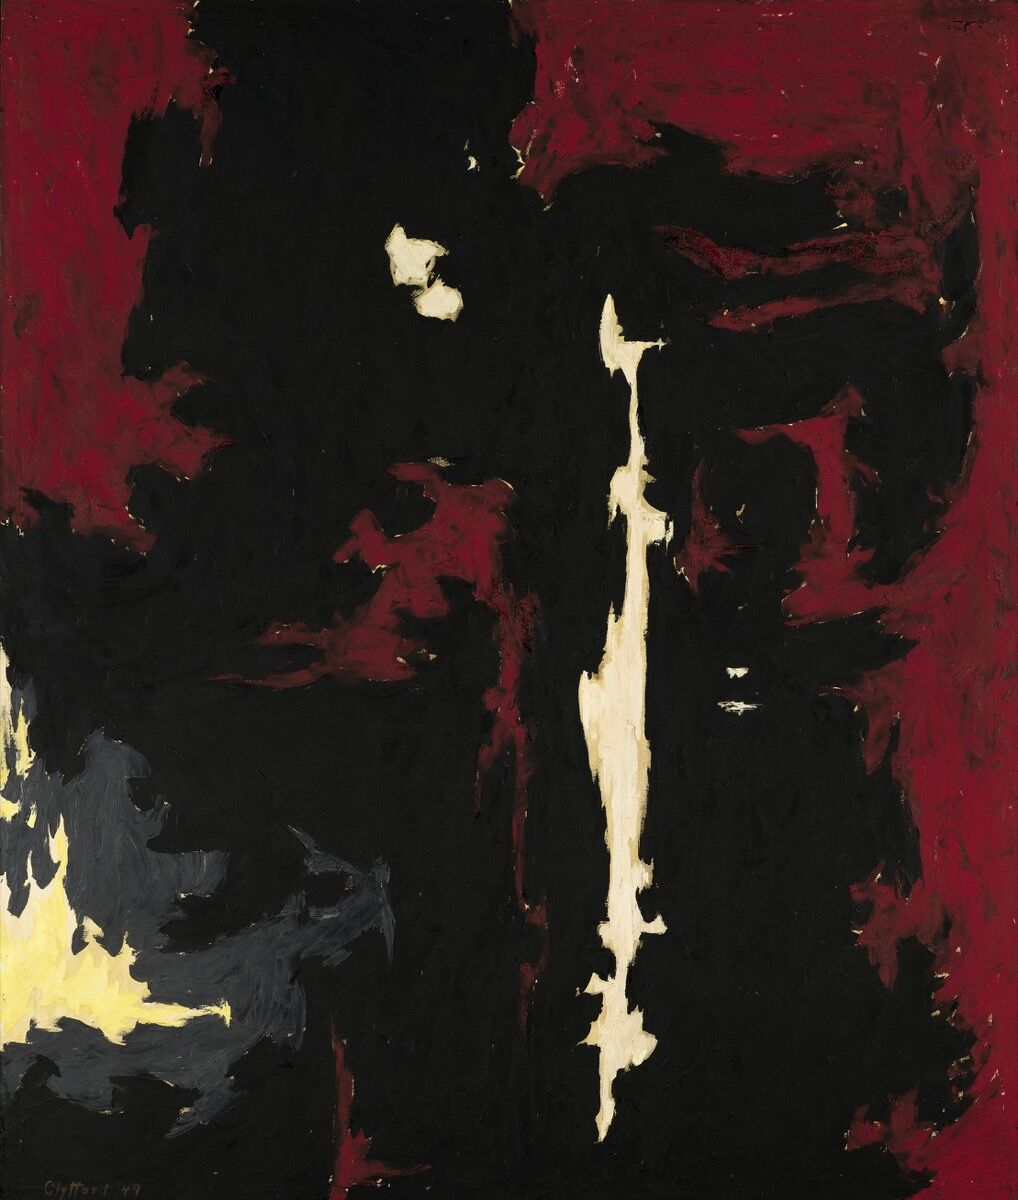 Clyfford Still, PH-399, signed twice and dated 1946. Courtesy of Sotheby's.